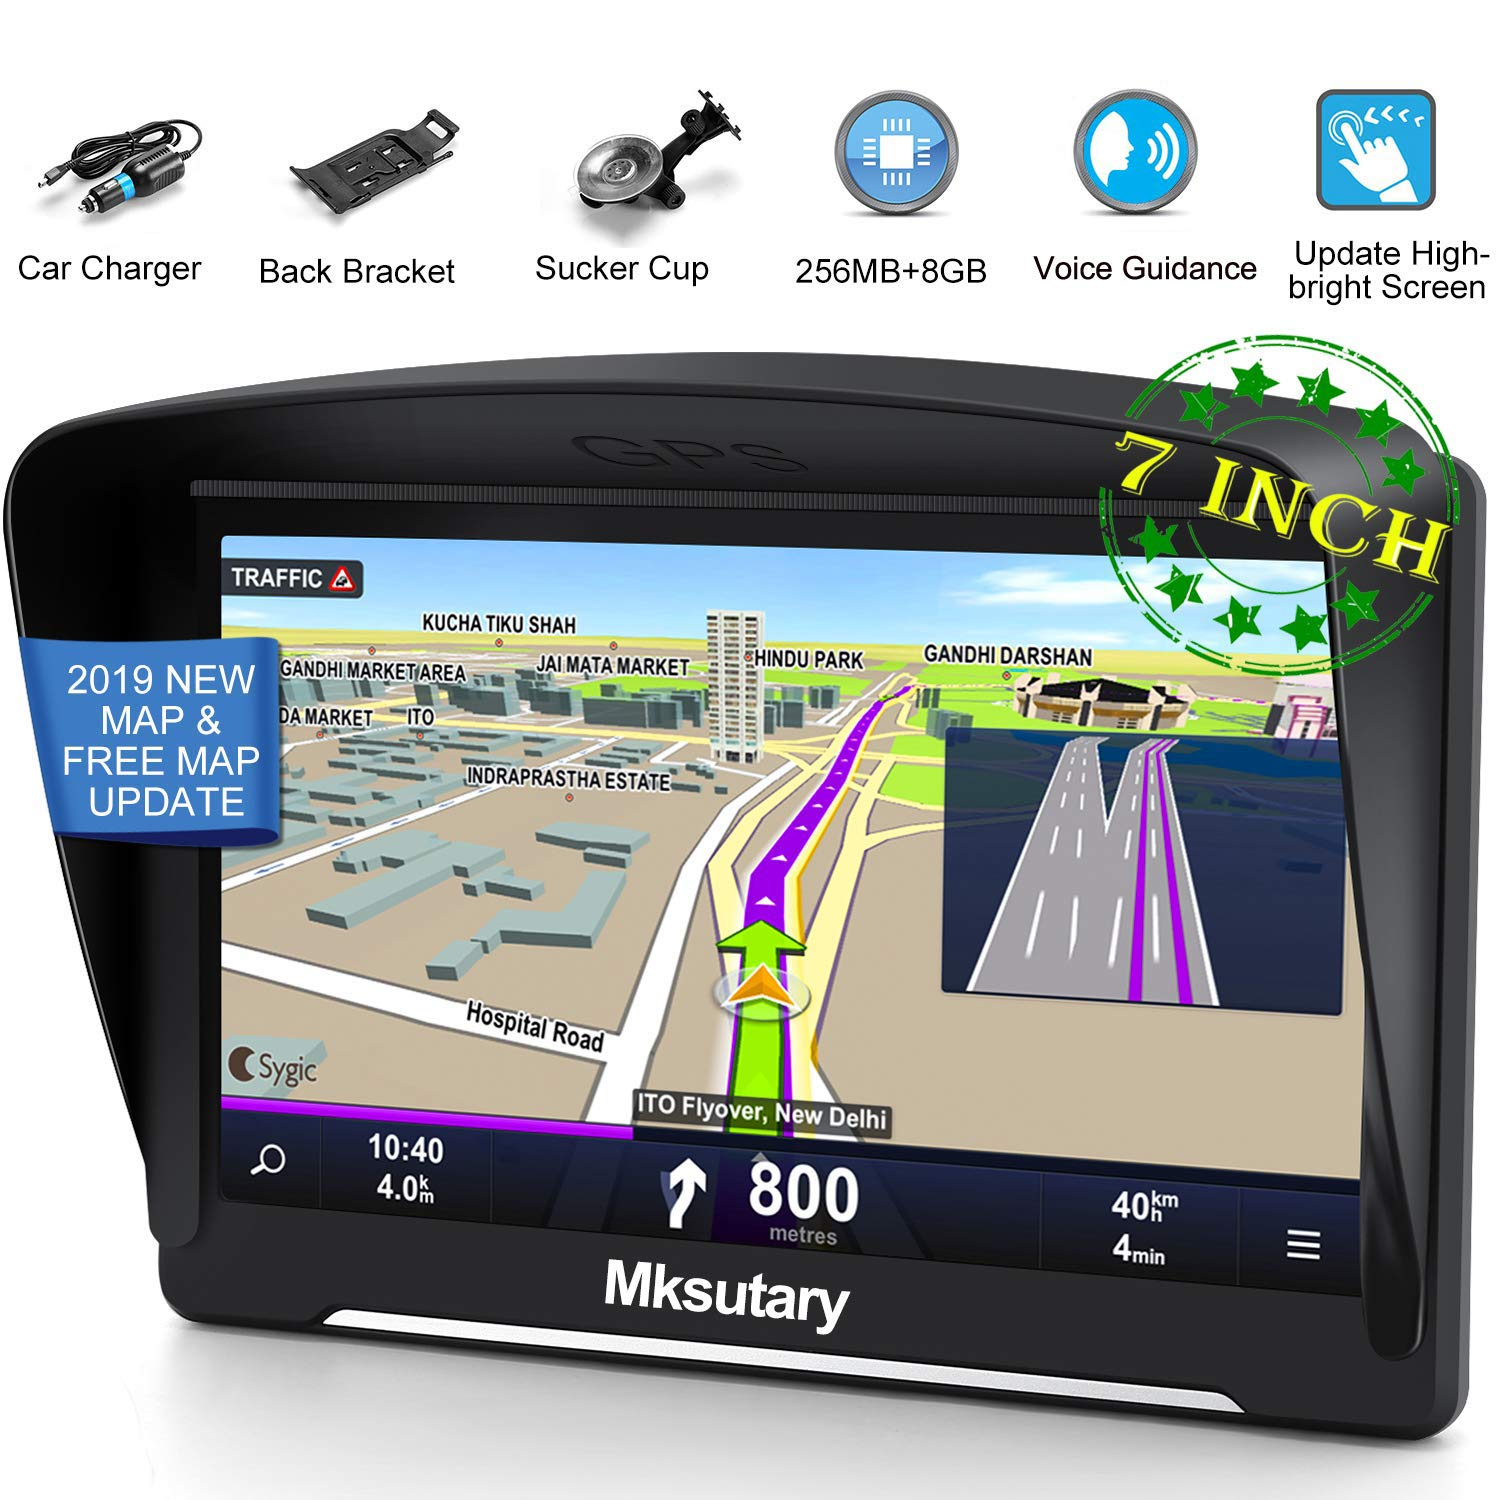 GPS Navigation for Car 2019, Mksutary 7 inch Highly-Brightness capacitive Touch Screen GPS, 8 GB Lifetime Map Update, Turn-by-Turn Direction Reminding Real Voice Spoken Navigation System for Car GPS by Mksutary